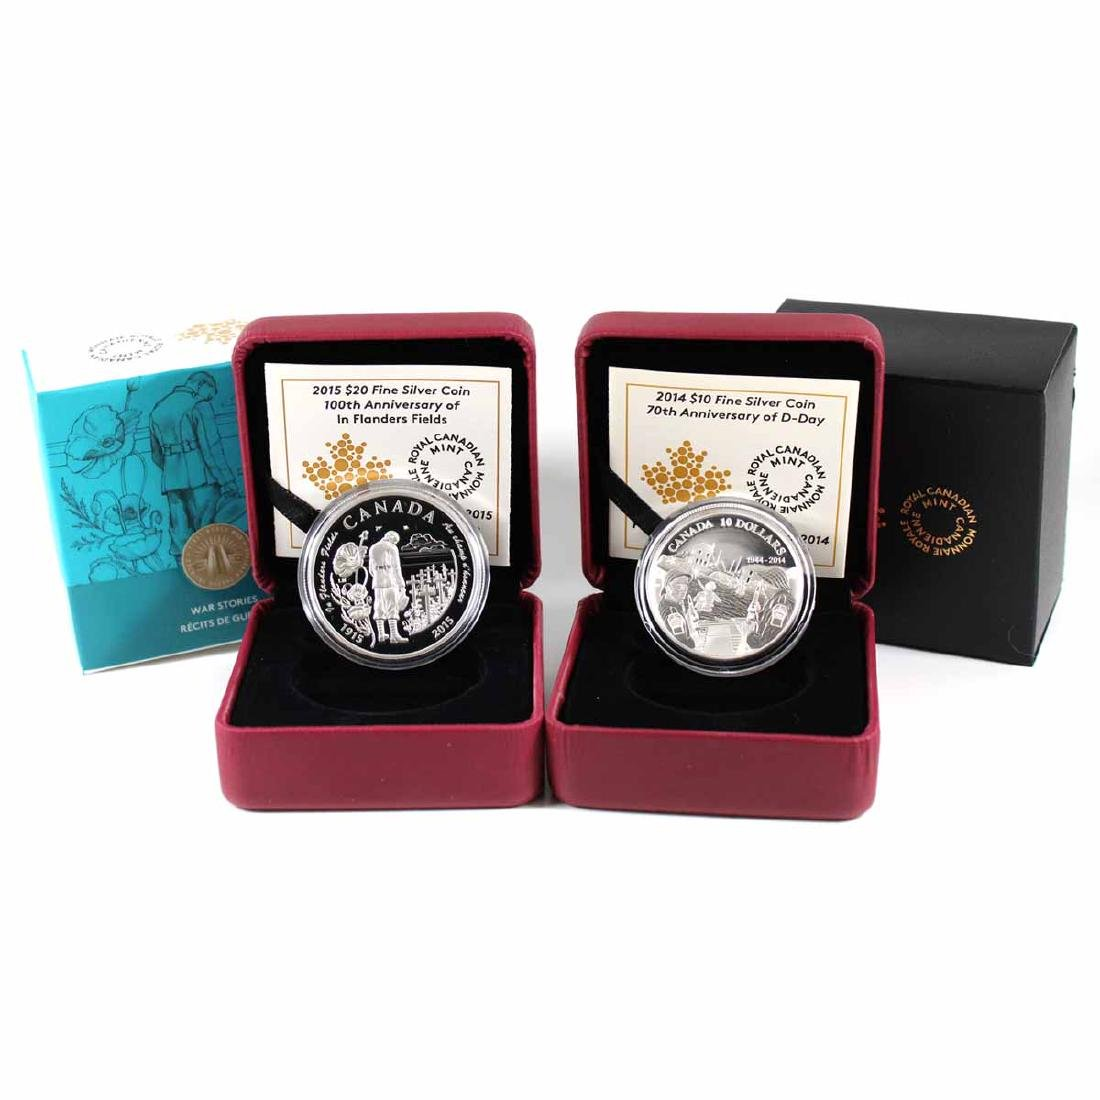 2014 Canada $10 70th Anniversary of D-Day & 2015 $20